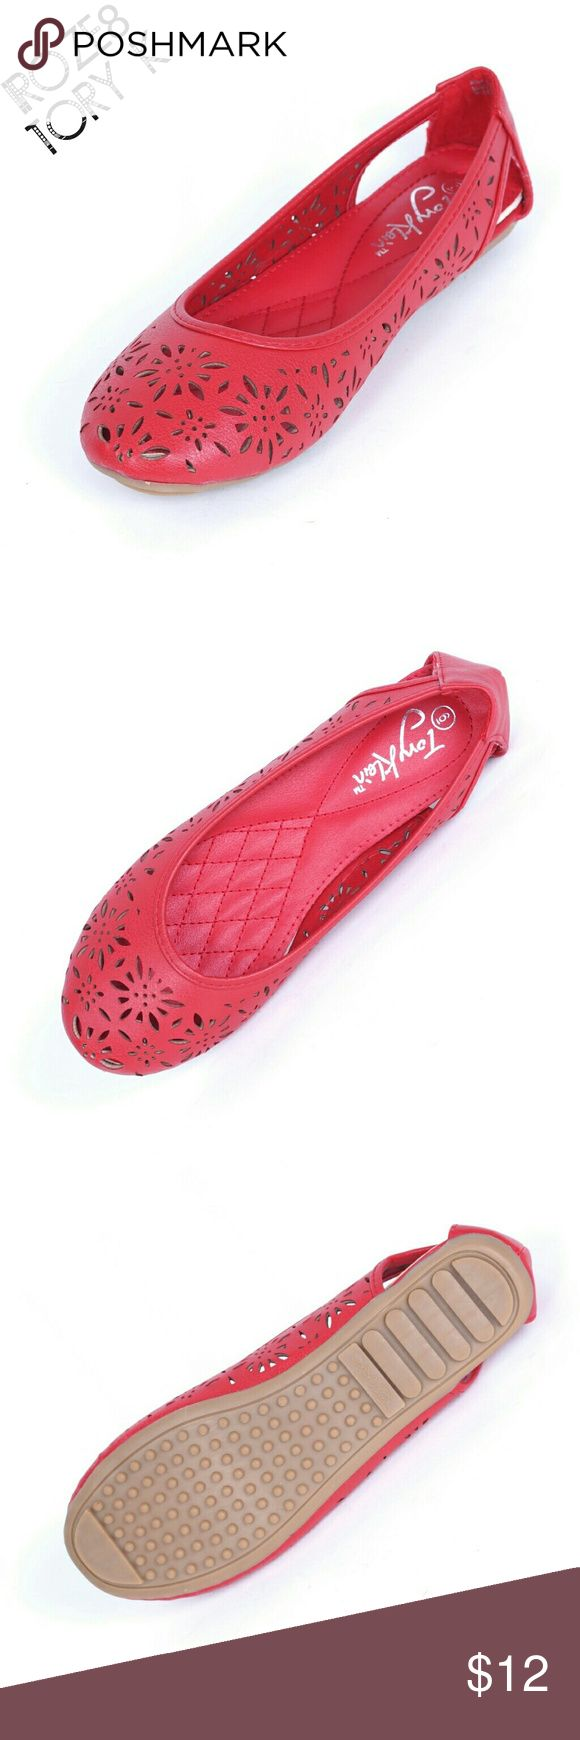 "Tory K Women Perforated Design Flats, b-1611, Red Brand new Tory K ein red woman ballerina flats with almost a sandal like airy quality. Soft cushioned sole. Bubbled bottom sole for extra traction. A true staple in ladies shoes fashion! Measurements: size 7 measures 9.5"", sz 7.5 - 9 3/4"", sz 8 - 10"", sz 8.5 - 10 1/4"", sz 9 - 10.5"", all half sizes are in 1/4"" increments of each other. Tory K  Shoes Flats & Loafers"